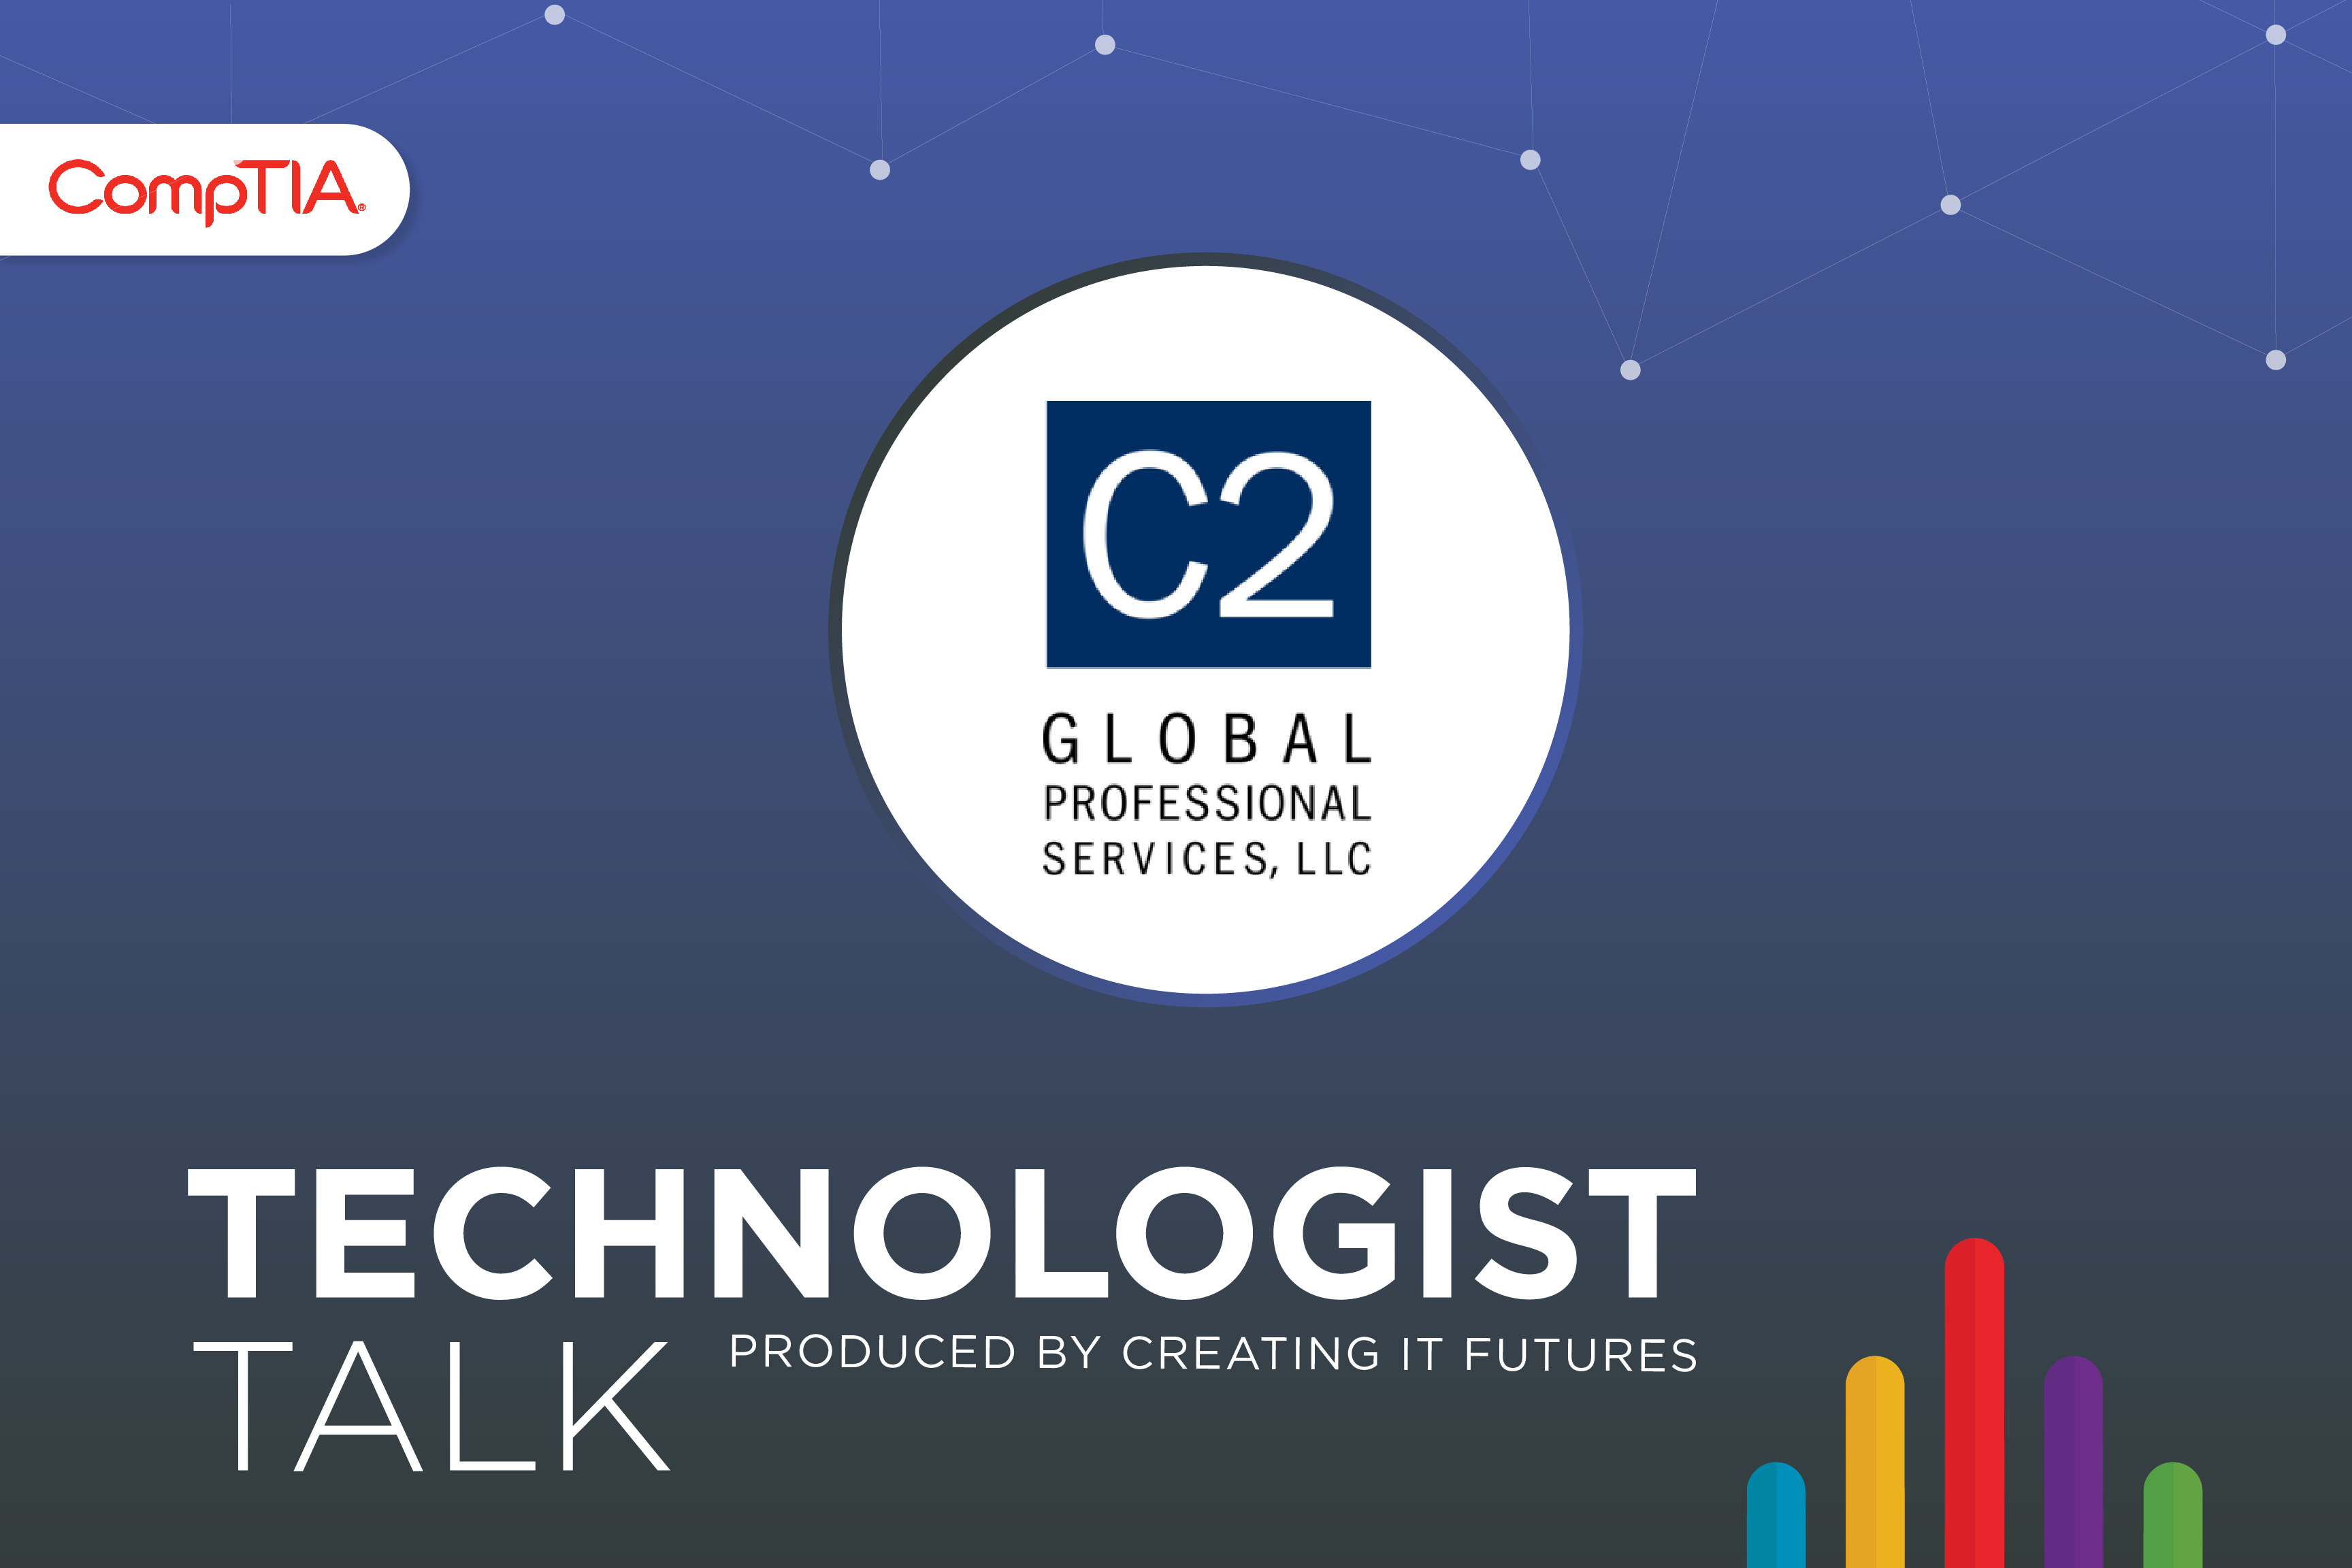 C2 Global Talks about custom training